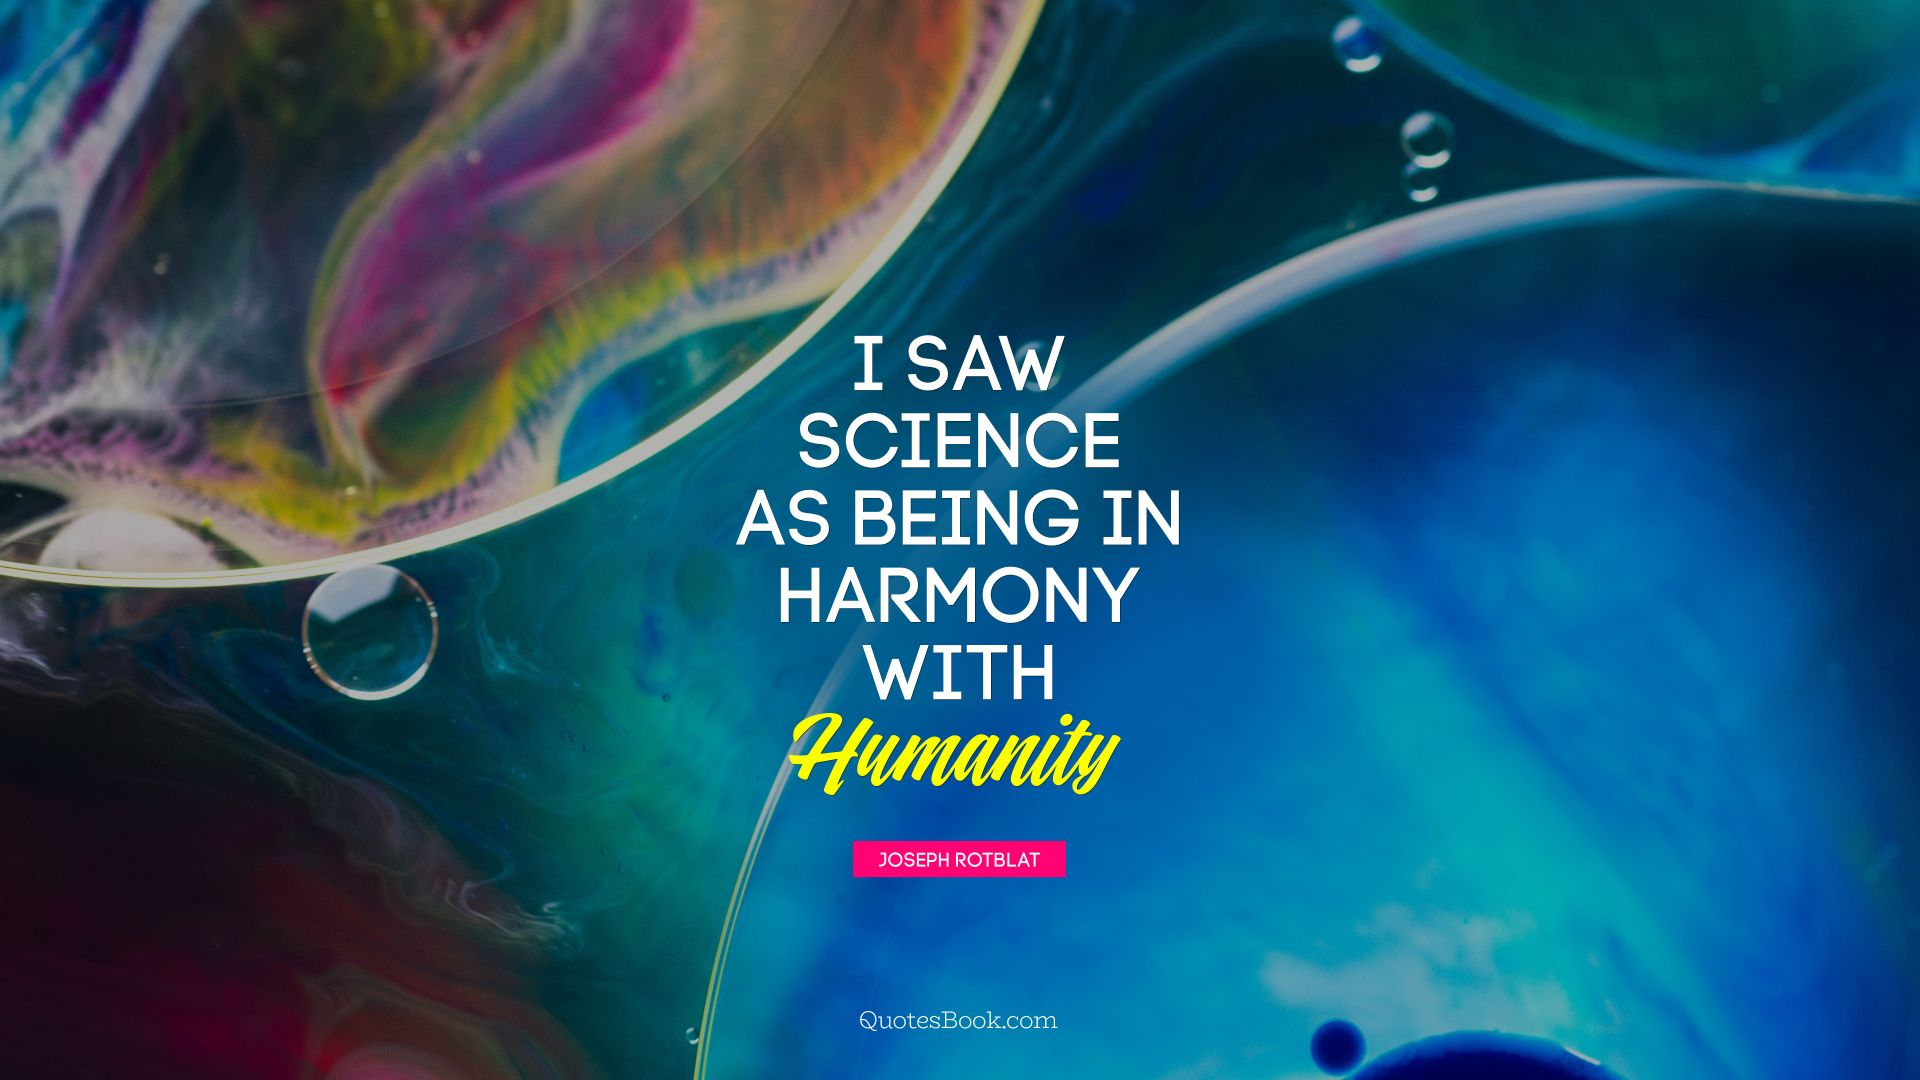 I saw science as being in harmony with humanity. - Quote by Joseph Rotblat